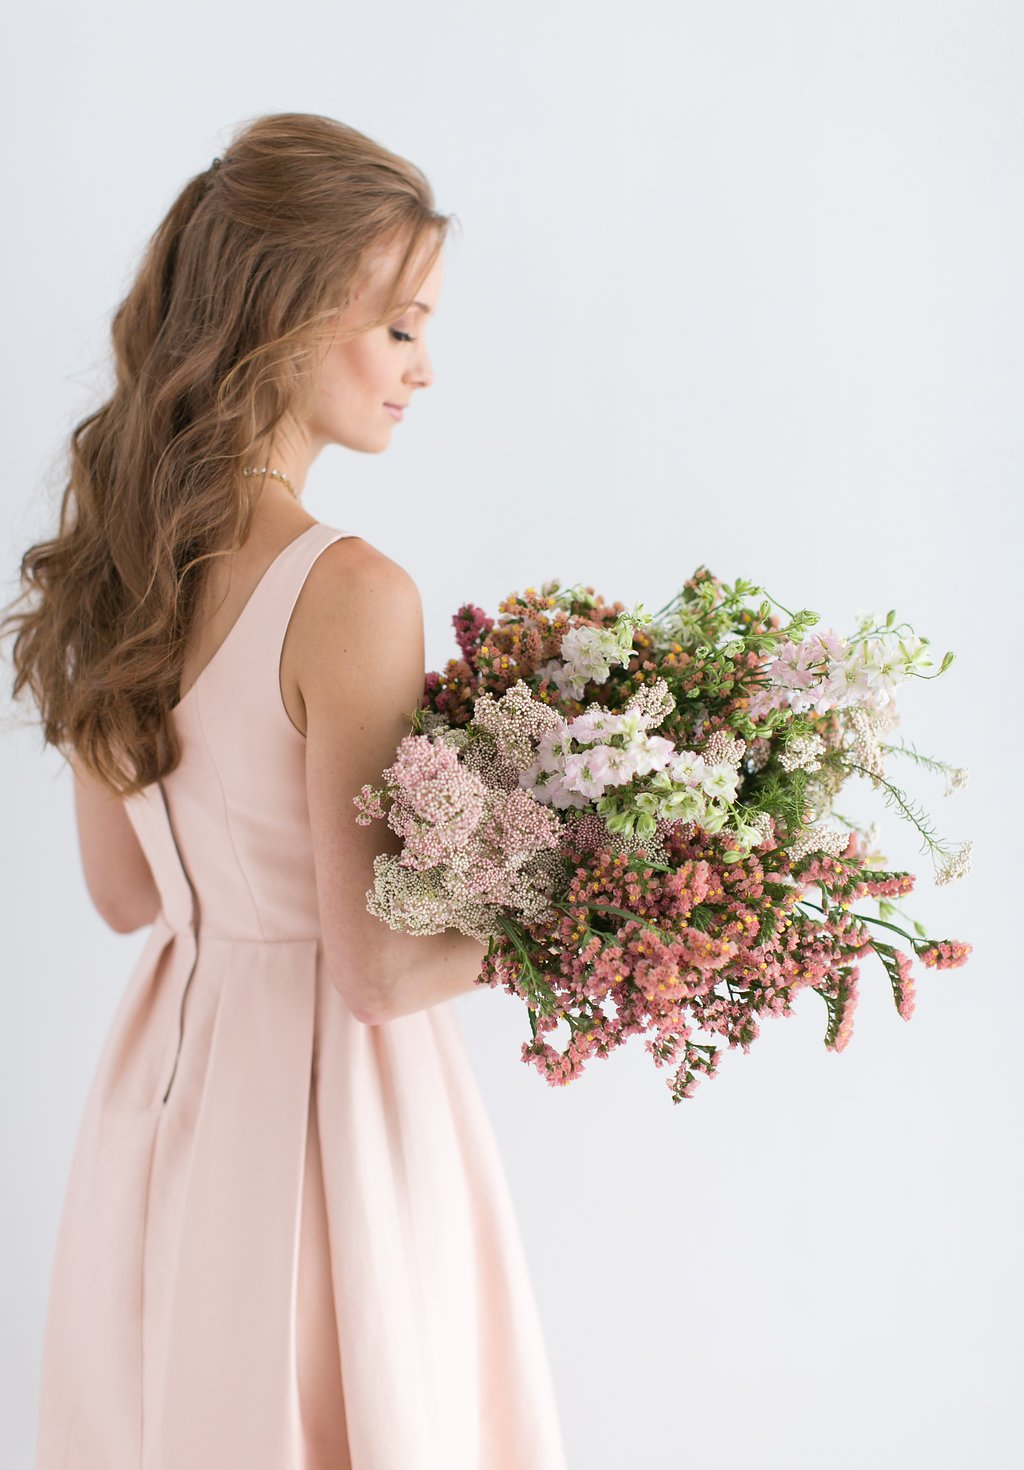 Bride holding wedding bouquet of spring flowers